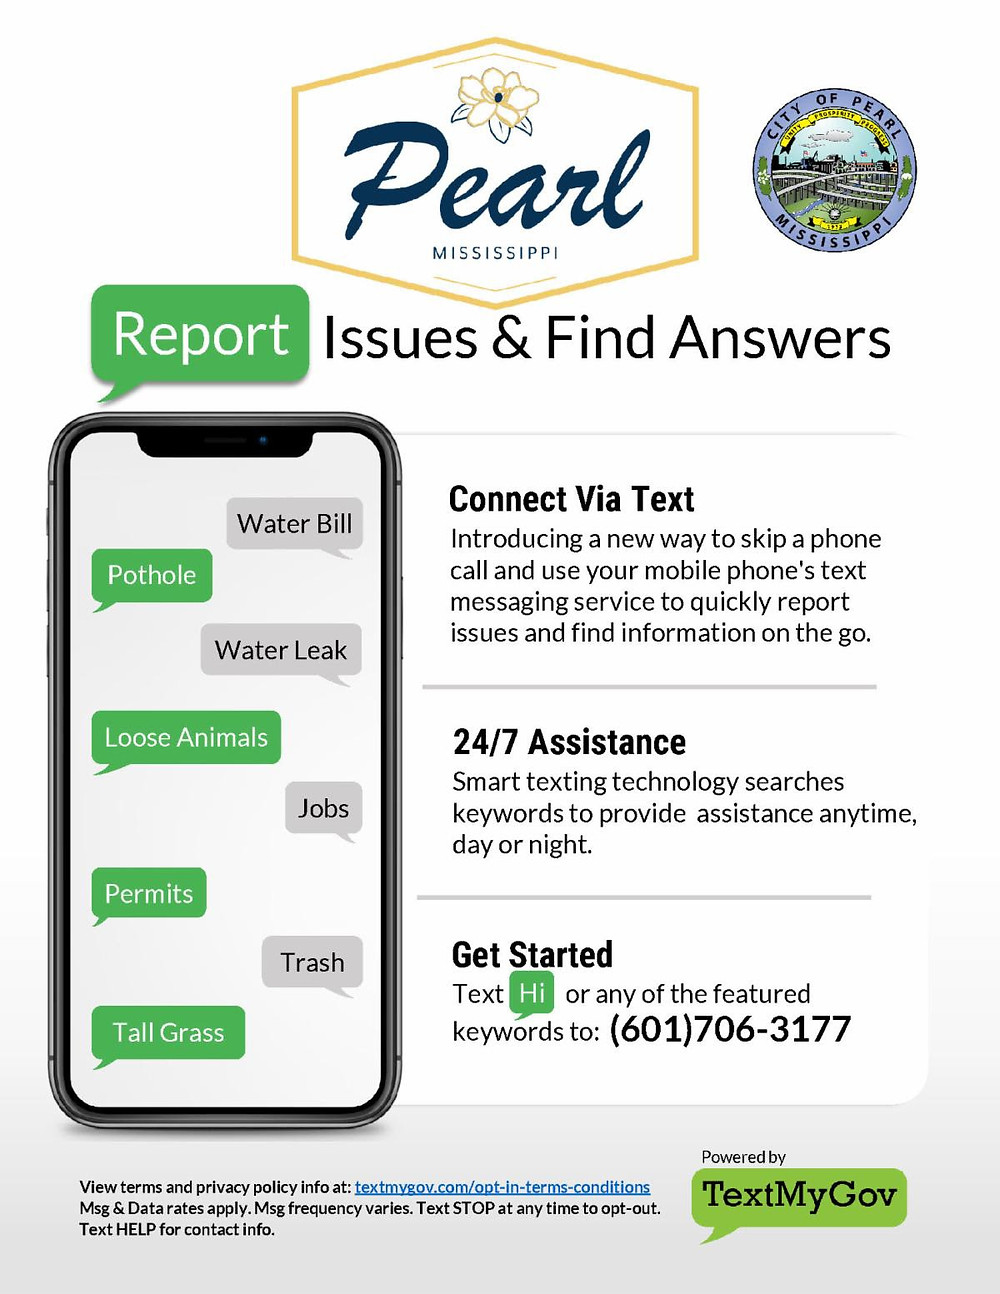 City of Pearl Report Issues and Find Answers with new text service